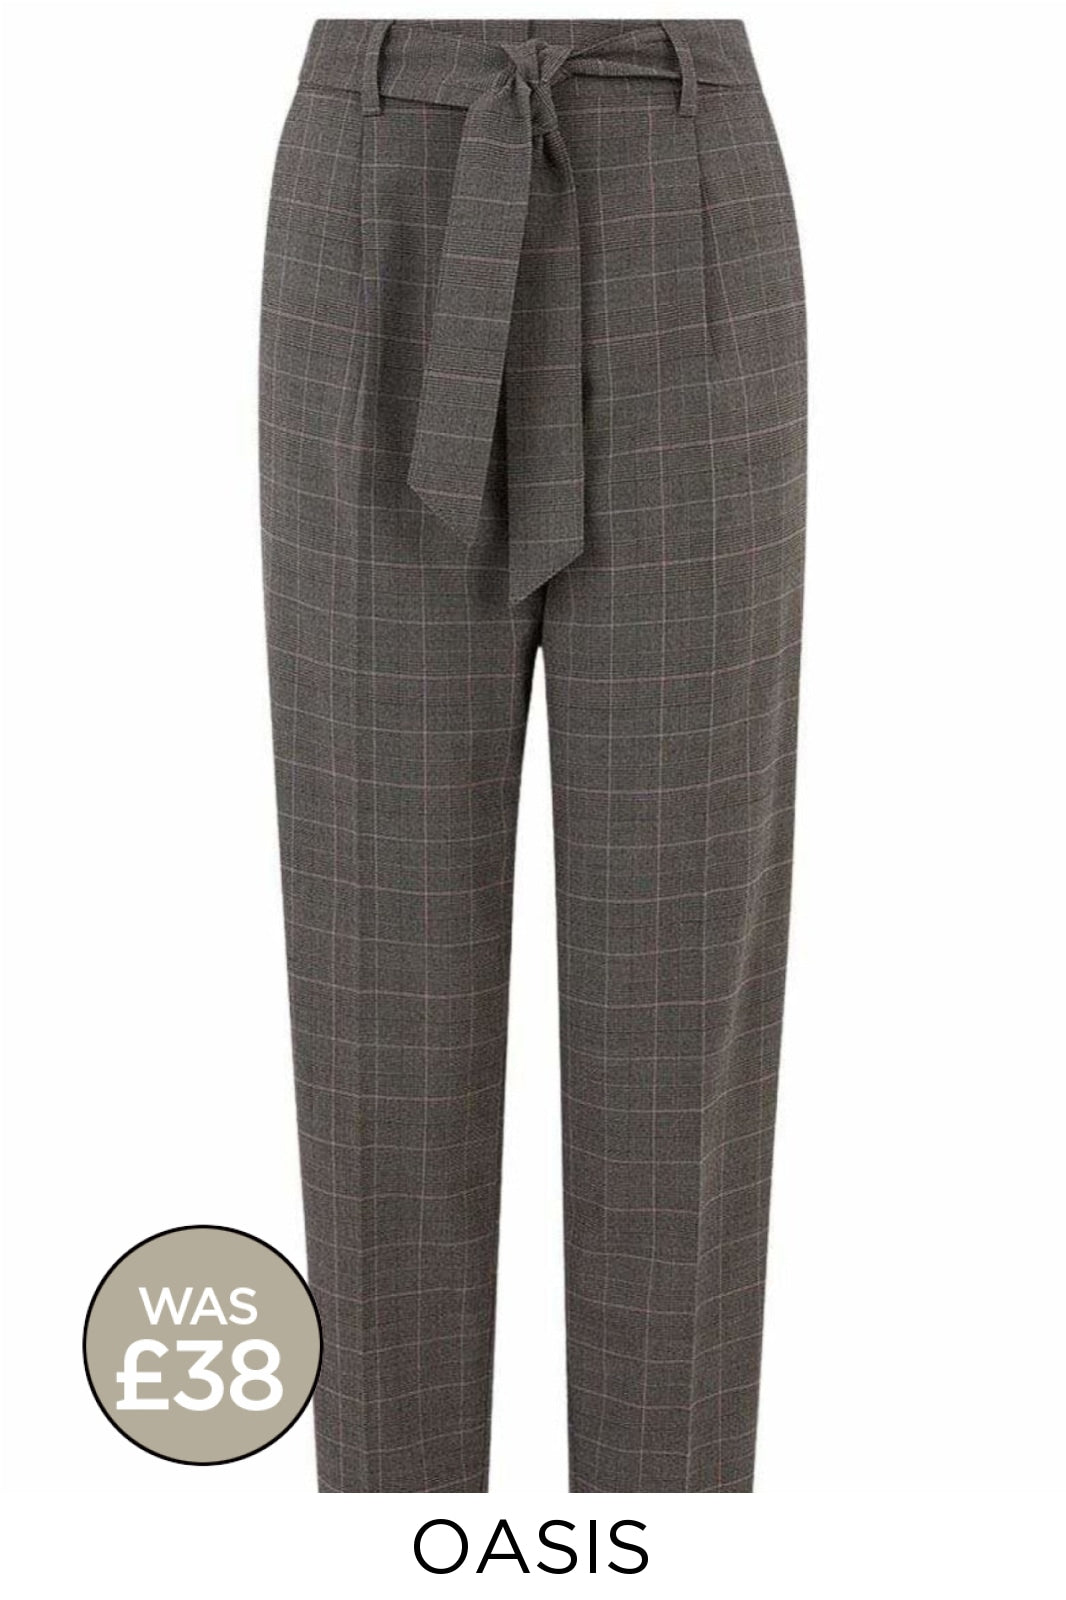 Oasis Ex Oasis Grey Check Capri Peg Trousers | 6 Secret Label